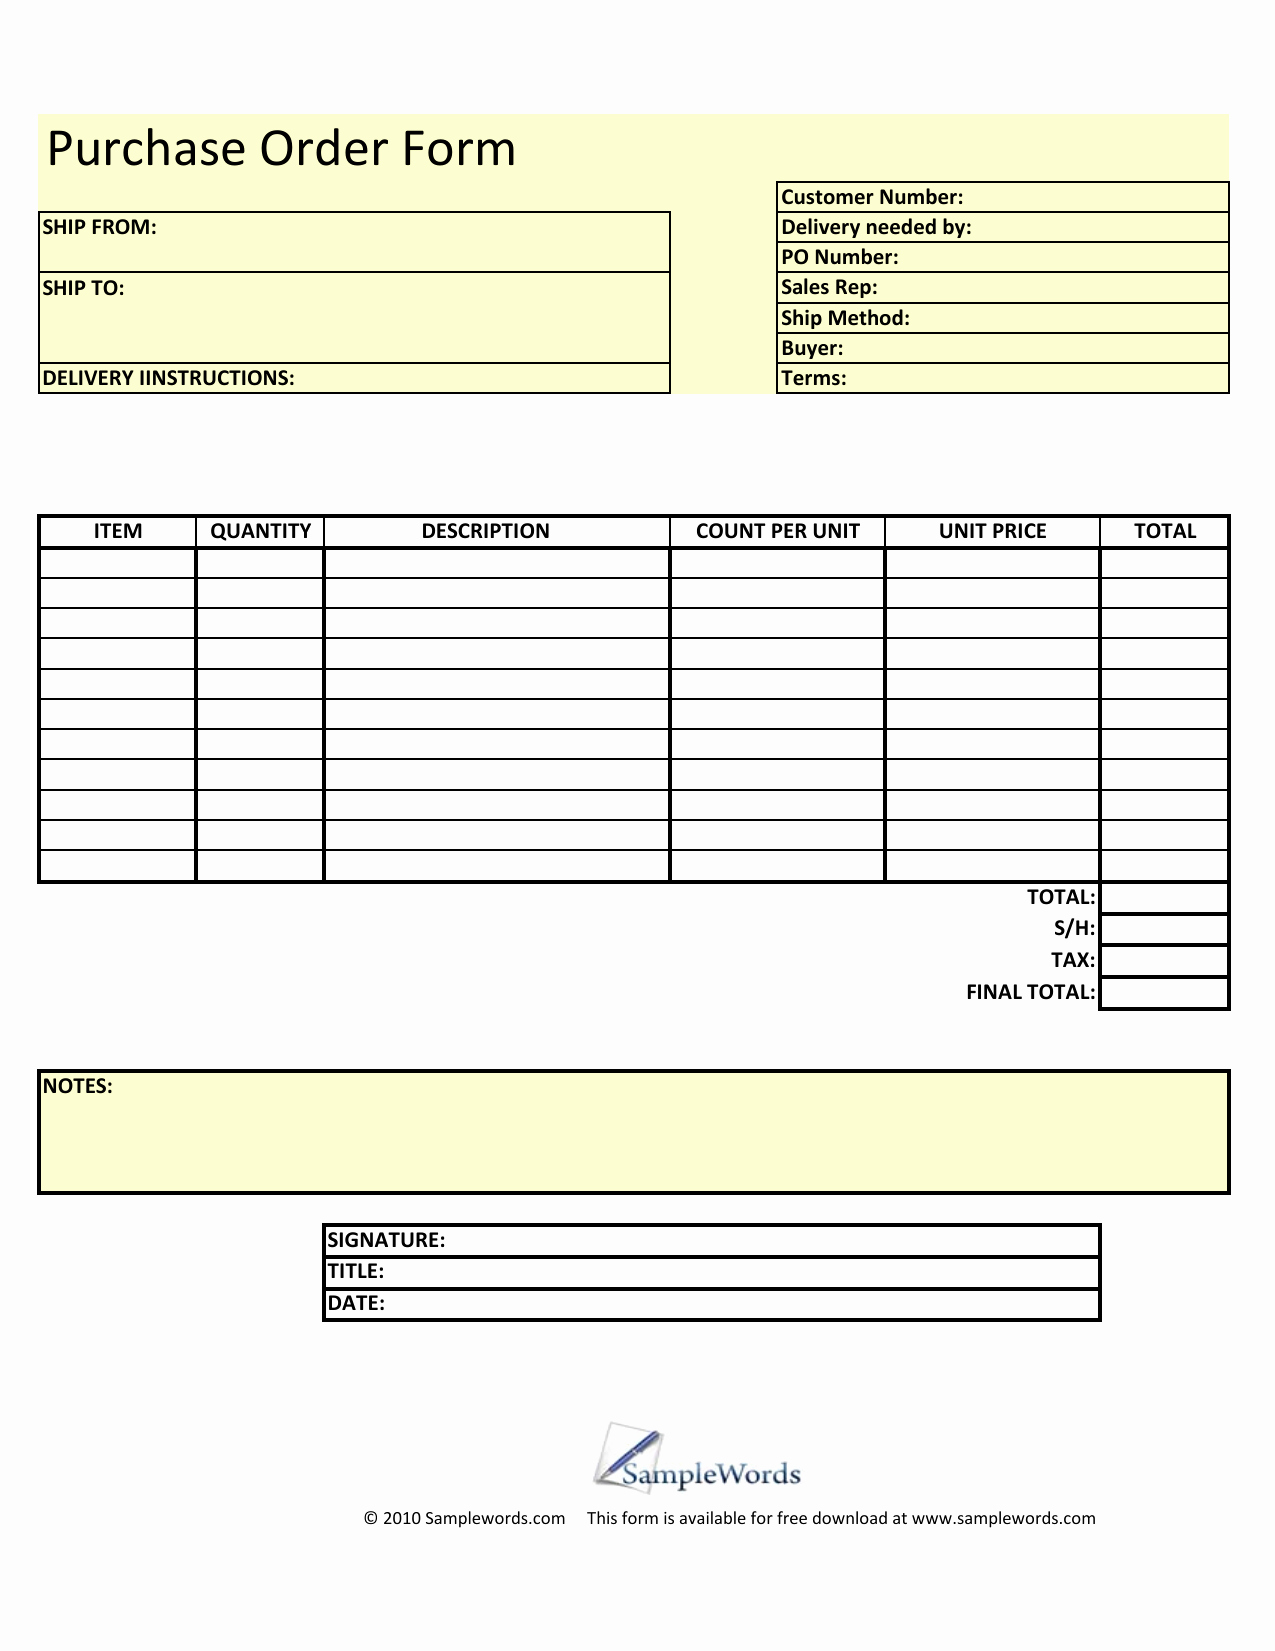 Excel order form Template Luxury Download Blank Purchase order form Template Excel